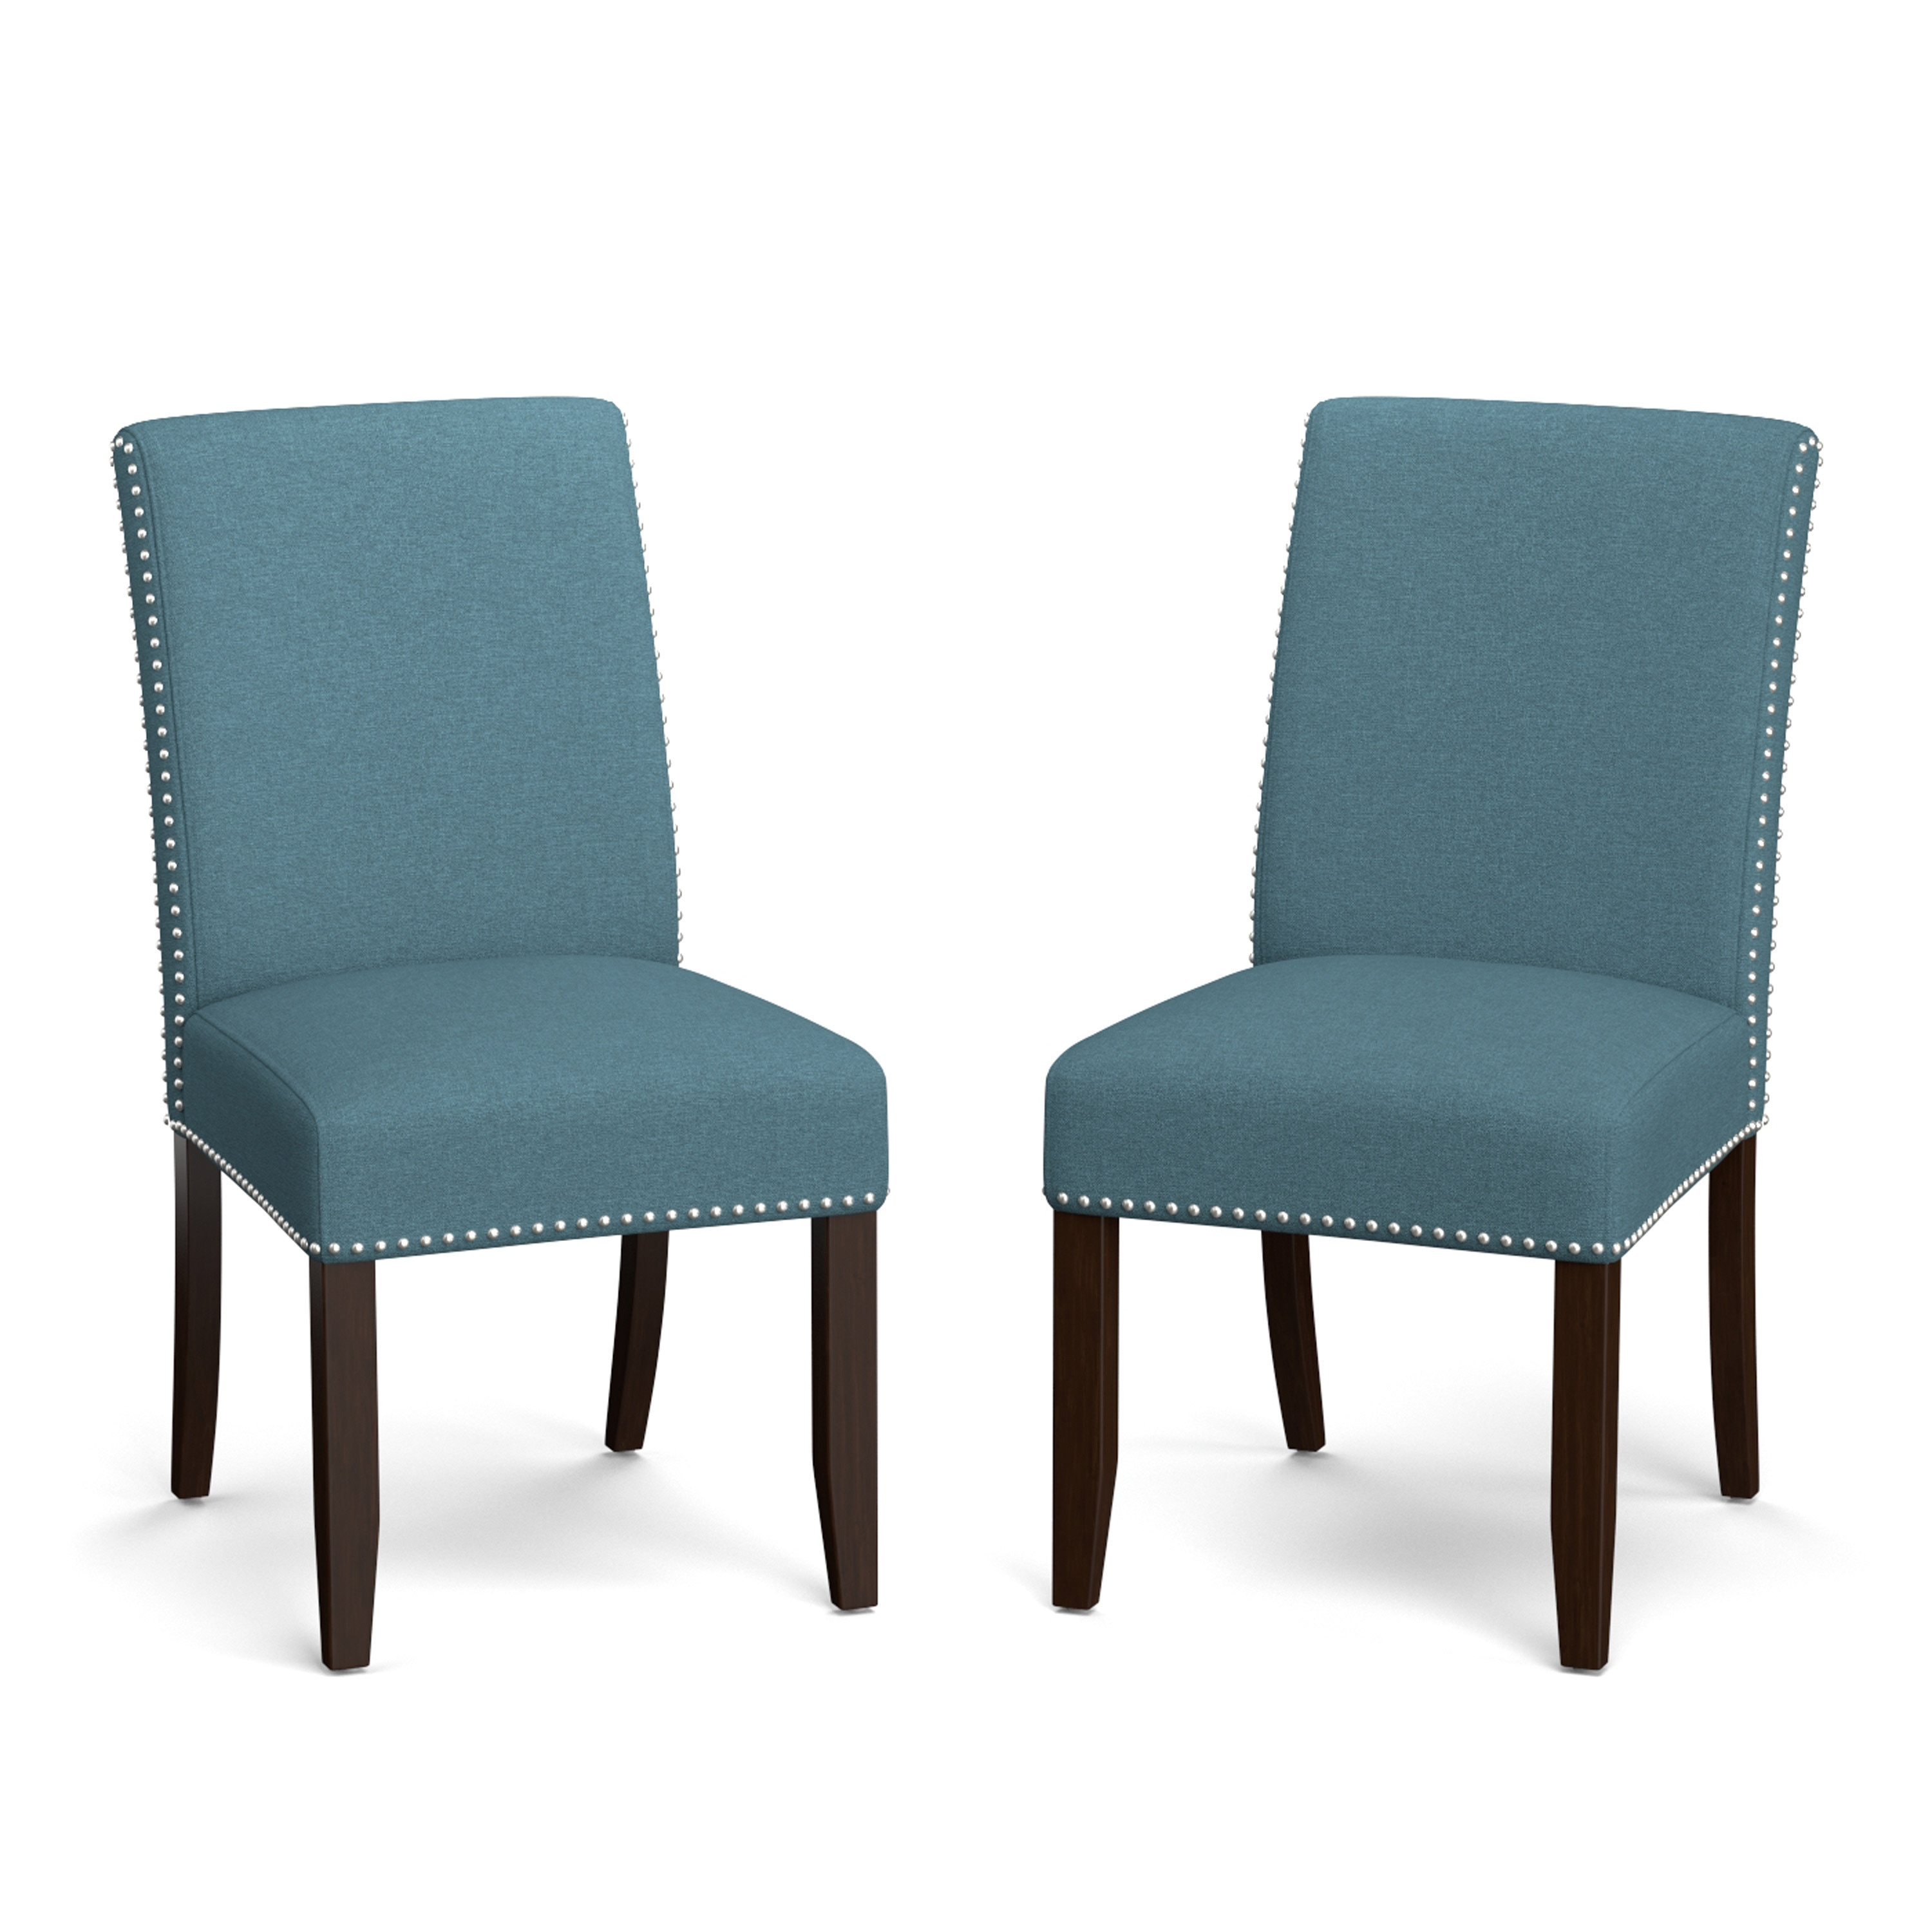 Porch den pope street blue linen upholstered armless dining chairs set of 2